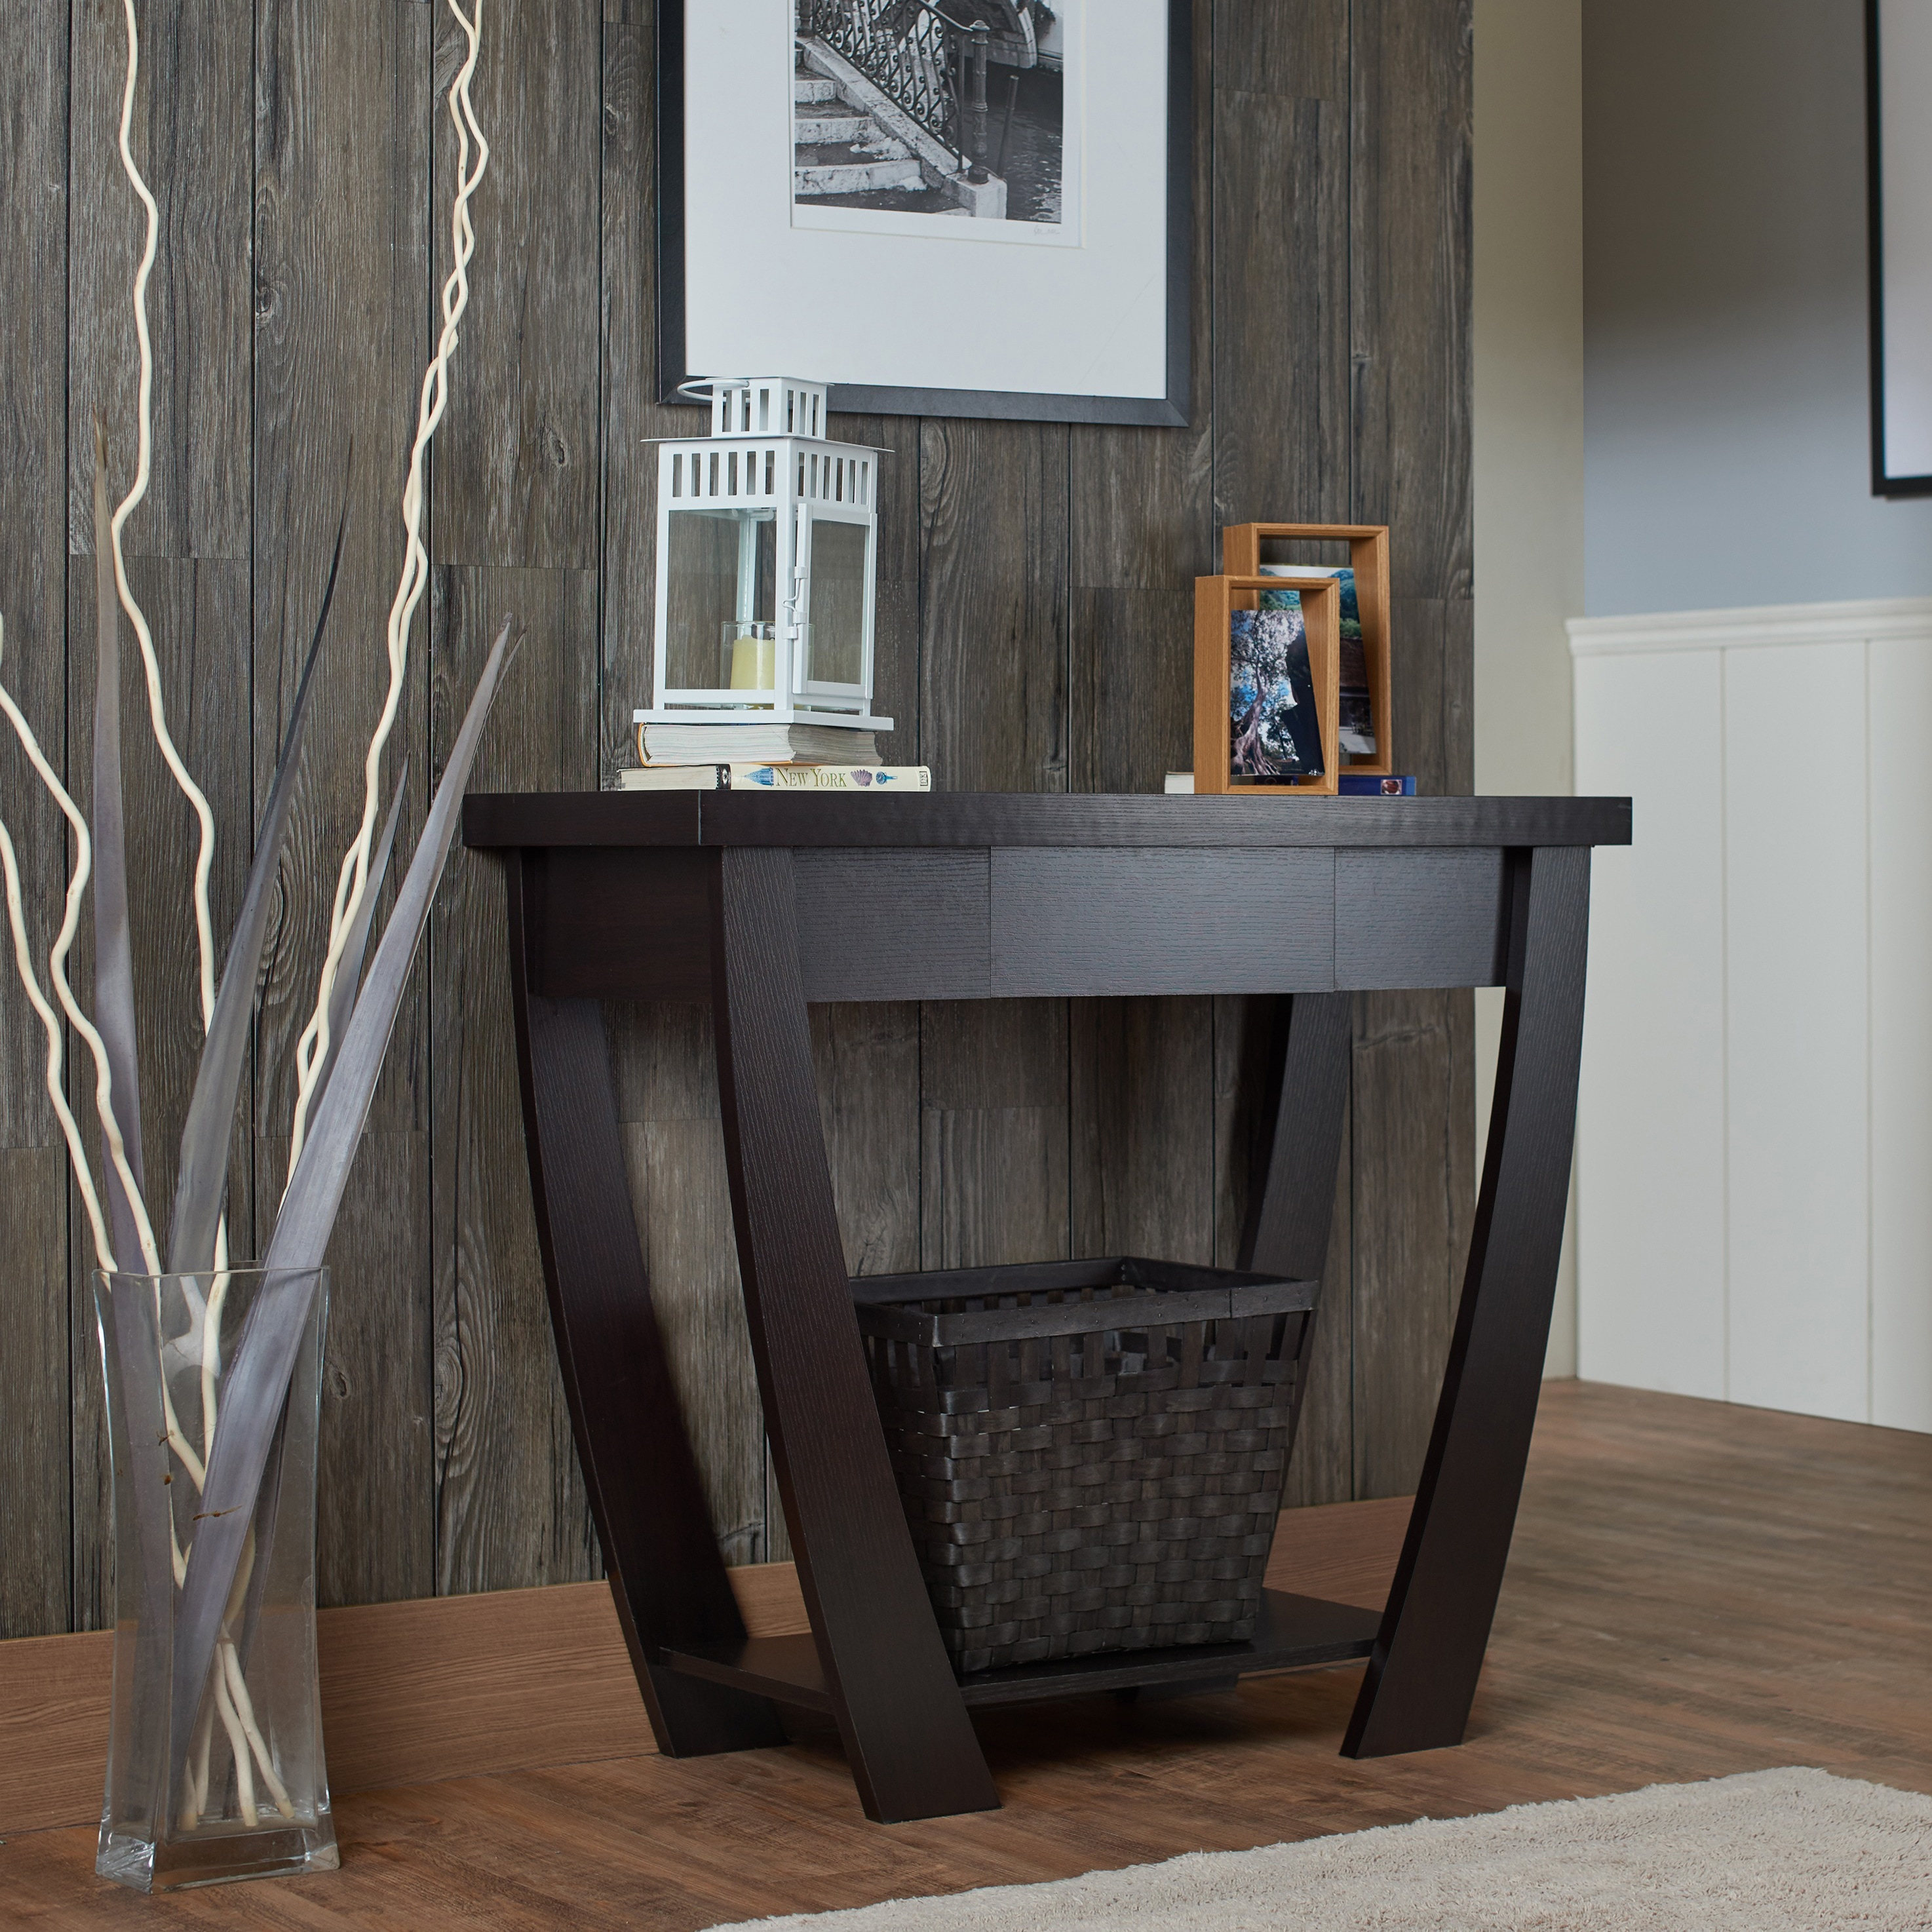 Super Buy Console Tables Online At Overstock Our Best Living Andrewgaddart Wooden Chair Designs For Living Room Andrewgaddartcom